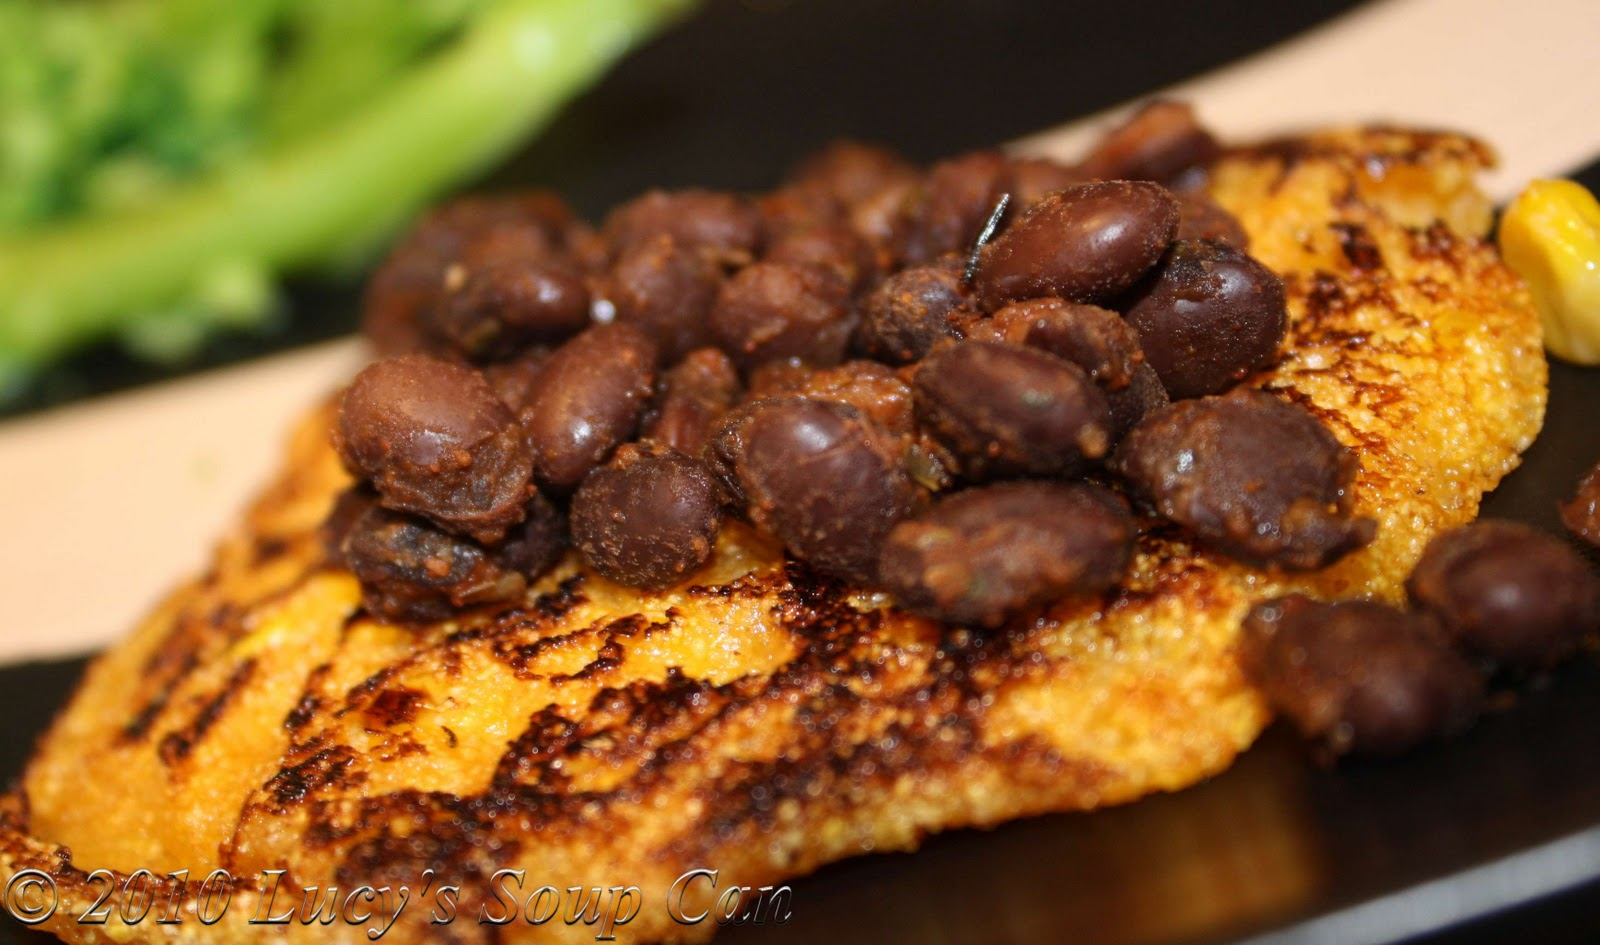 Lucy's Soup Can: Spicy Corn Cakes with Black Beans